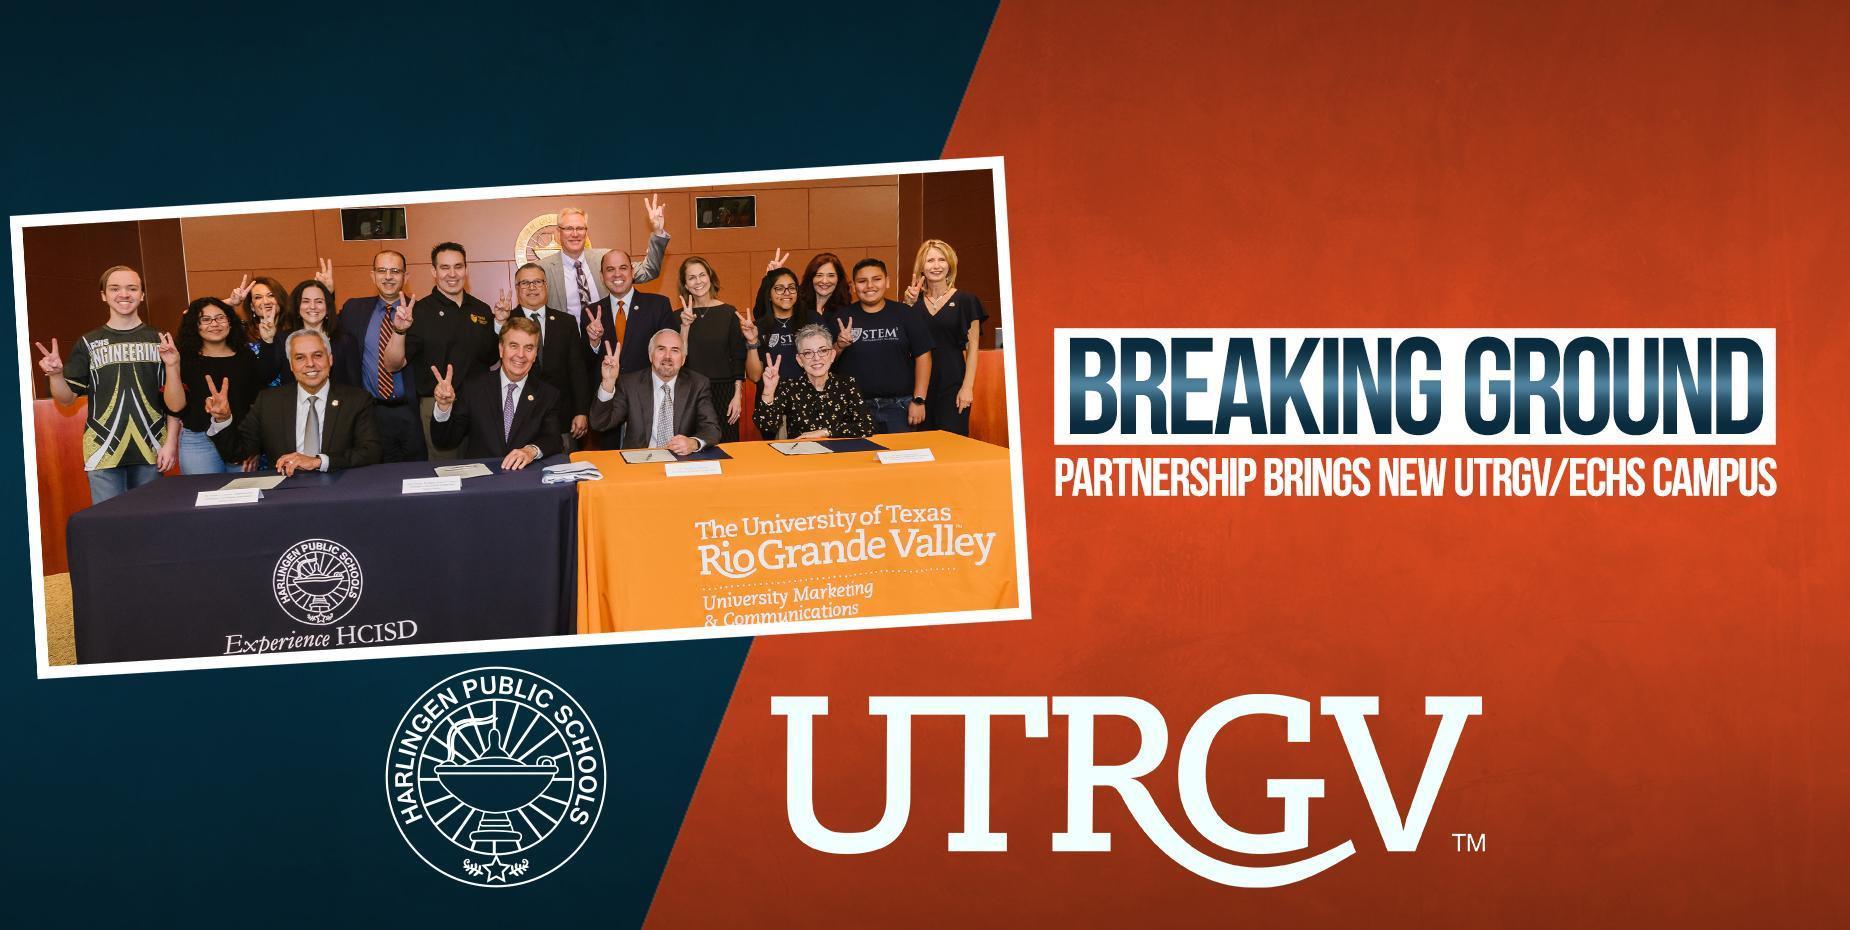 UTRGV - Breaking Ground